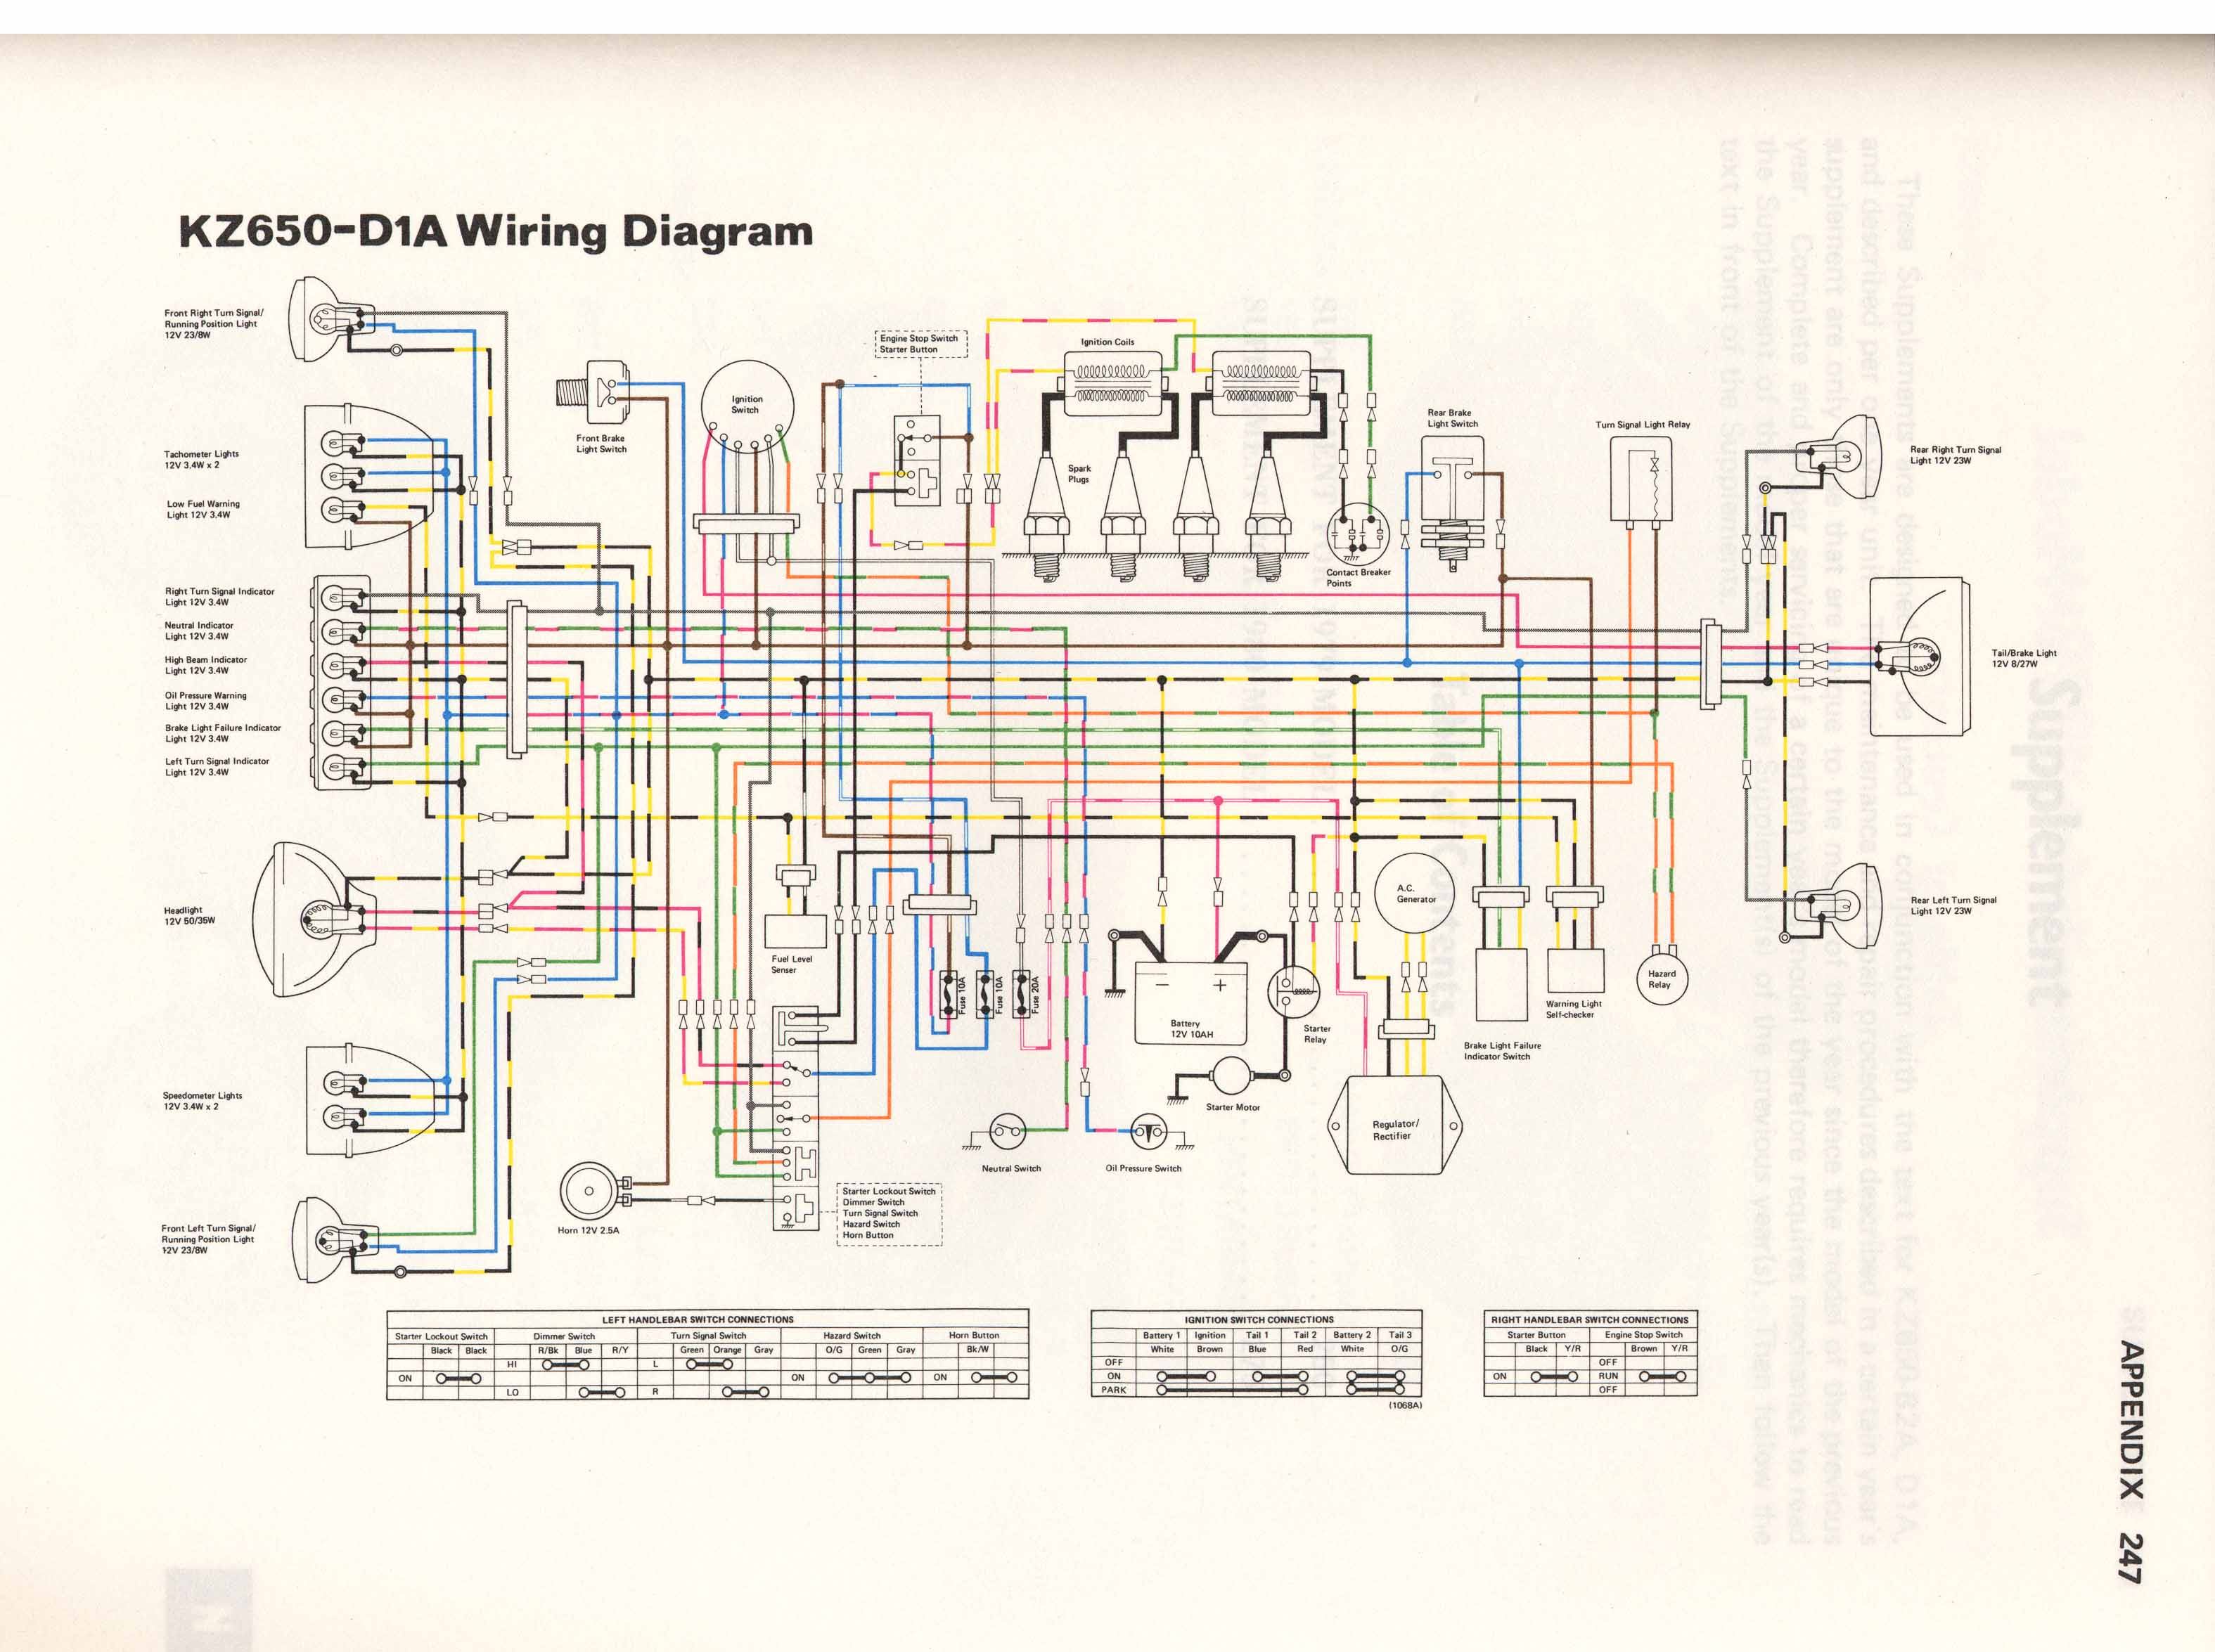 06a2 1979 xs1100 wiring diagram free picture schematic | wiring ... xs1100 wiring diagram ignition wiring kawasaki wiring diagram free wiring library